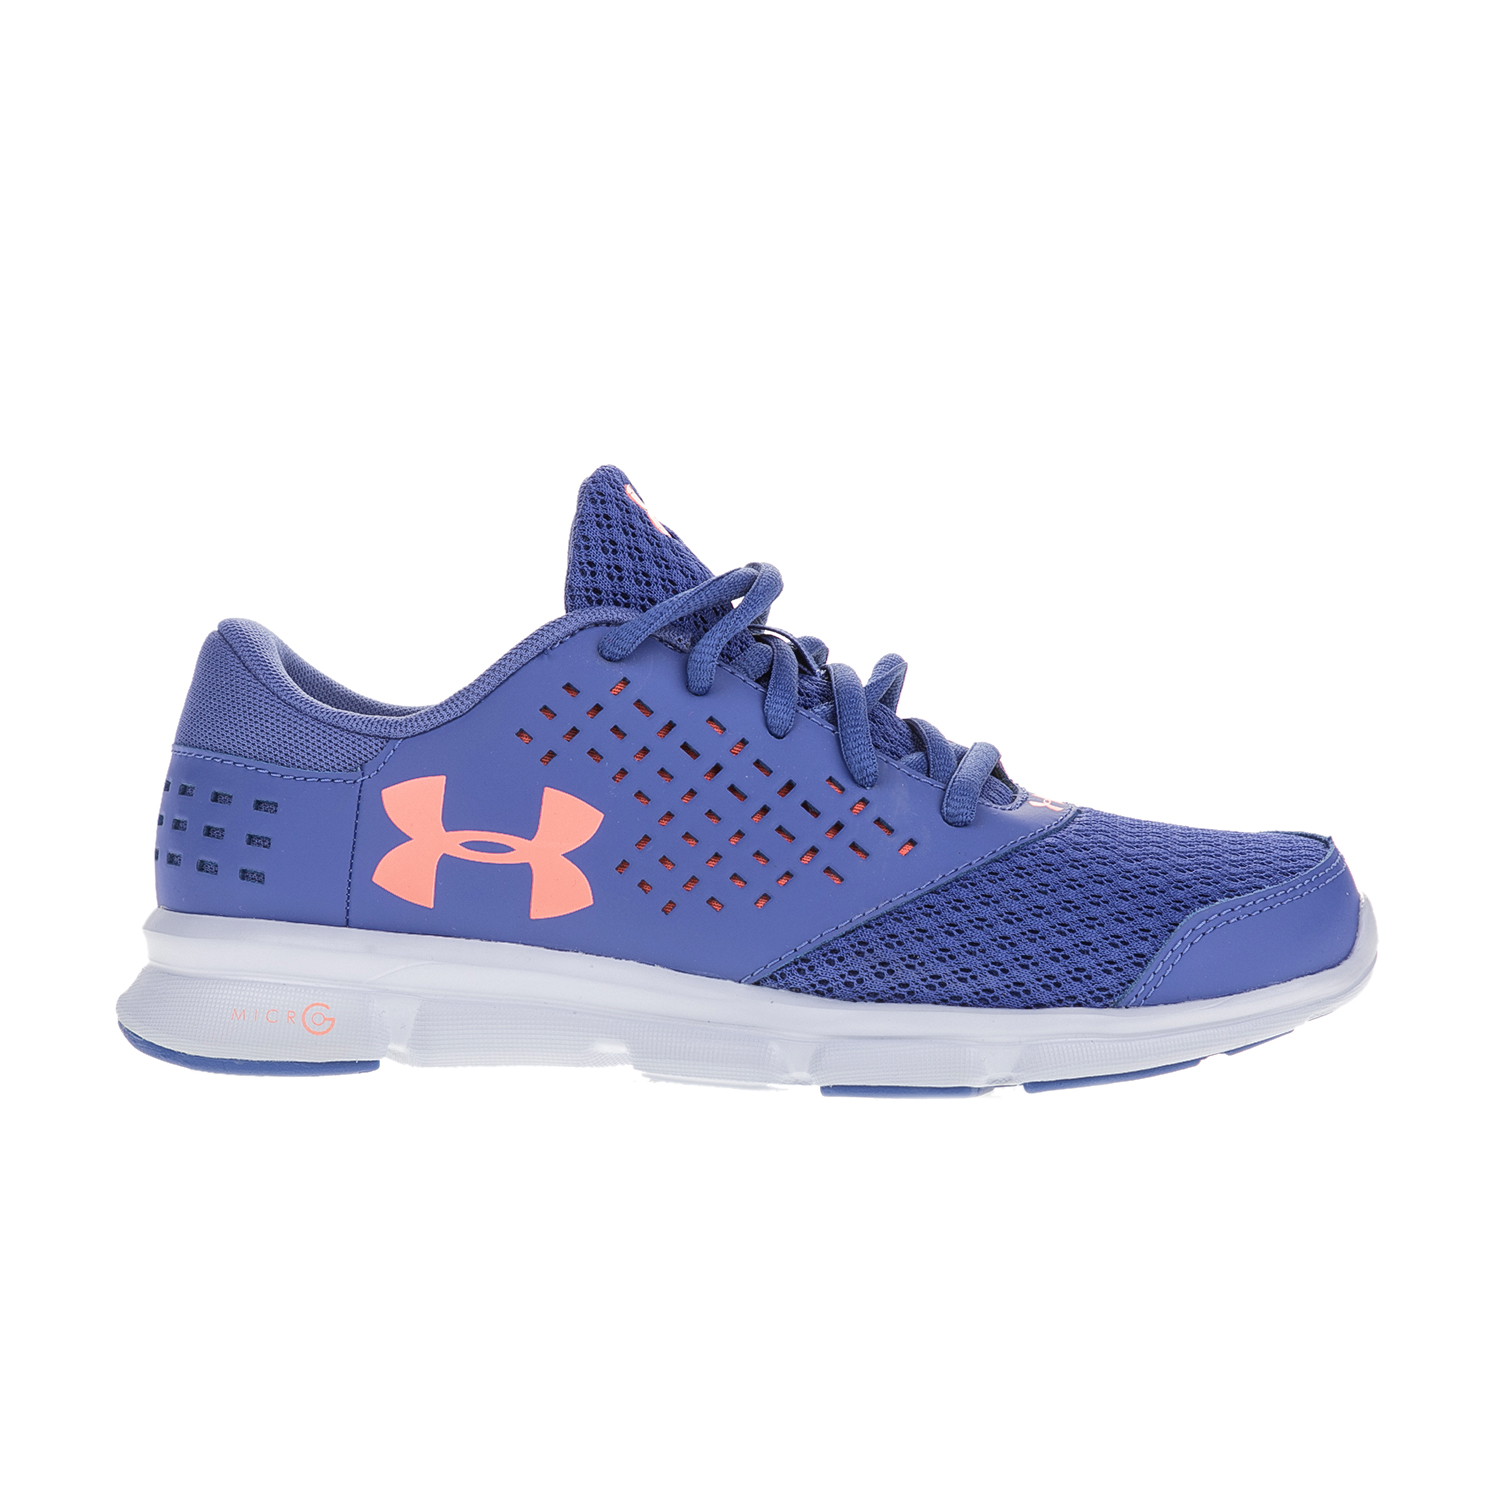 UNDER ARMOUR – Κοριτσίστικα αθλητικά παπούτσια UNDER ARMOUR GGS Micro G Rave RN μοβ